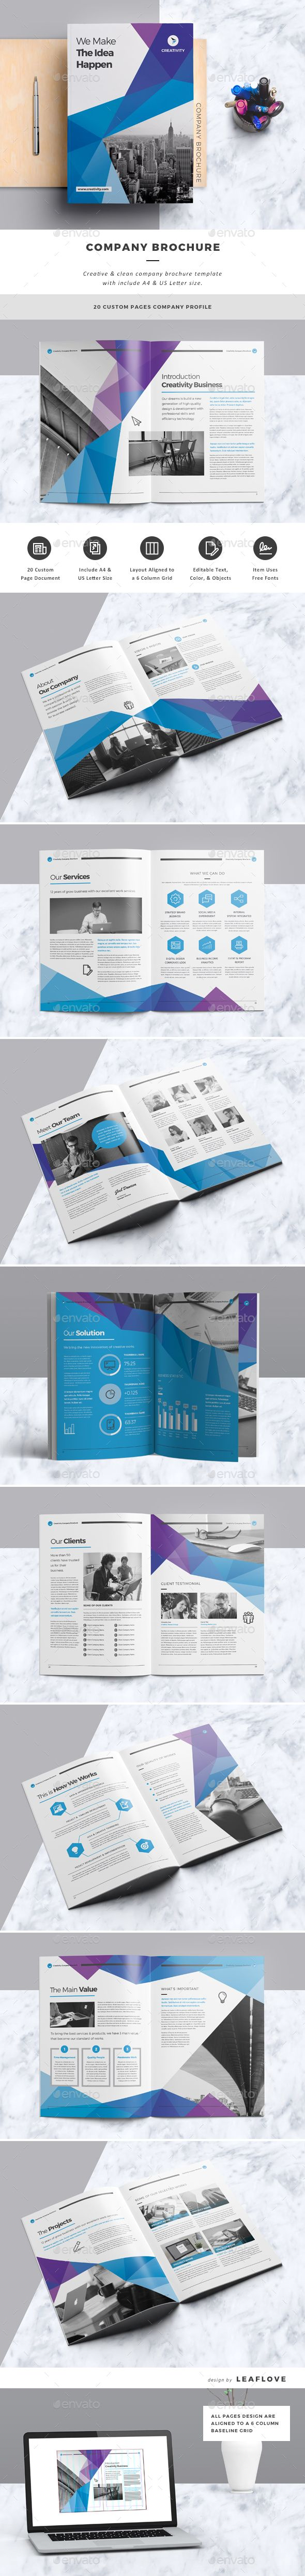 Company Brochure — InDesign Template #book #technology • Download ...